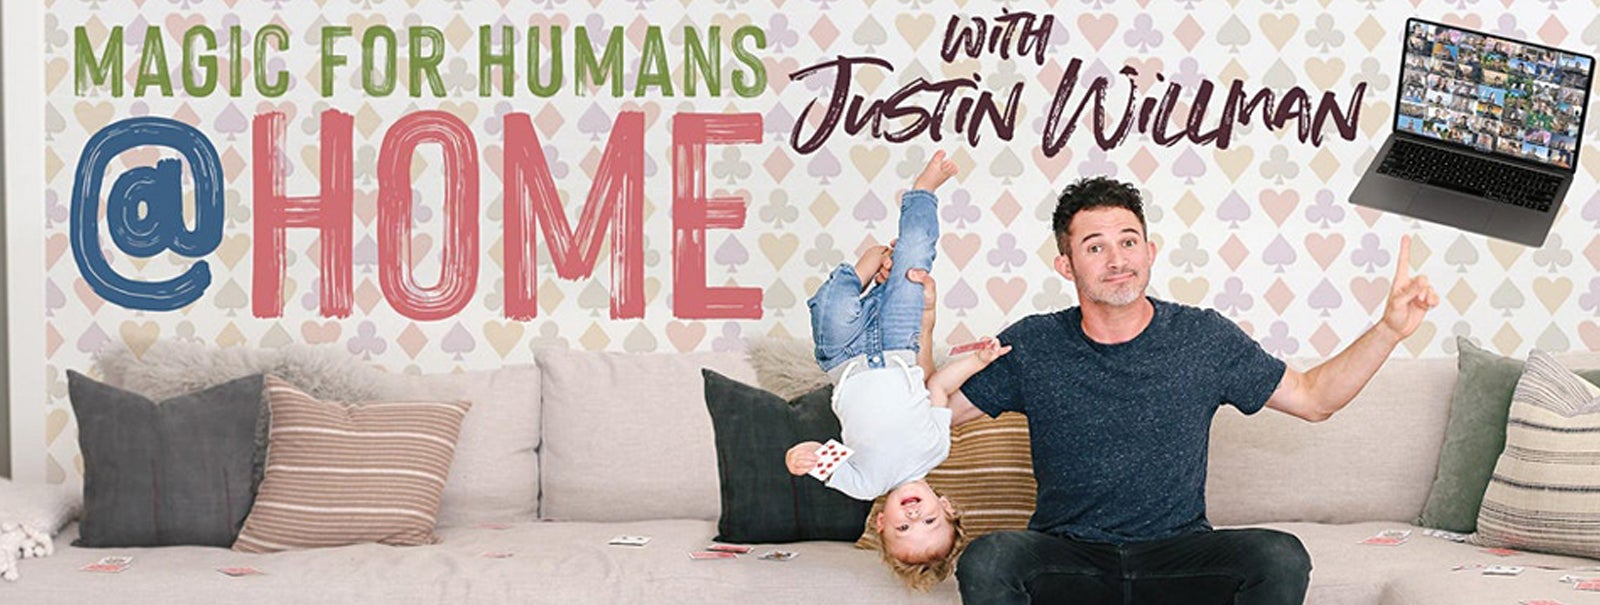 More Info - MAGIC FOR HUMANS (at HOME) with Justin Willman